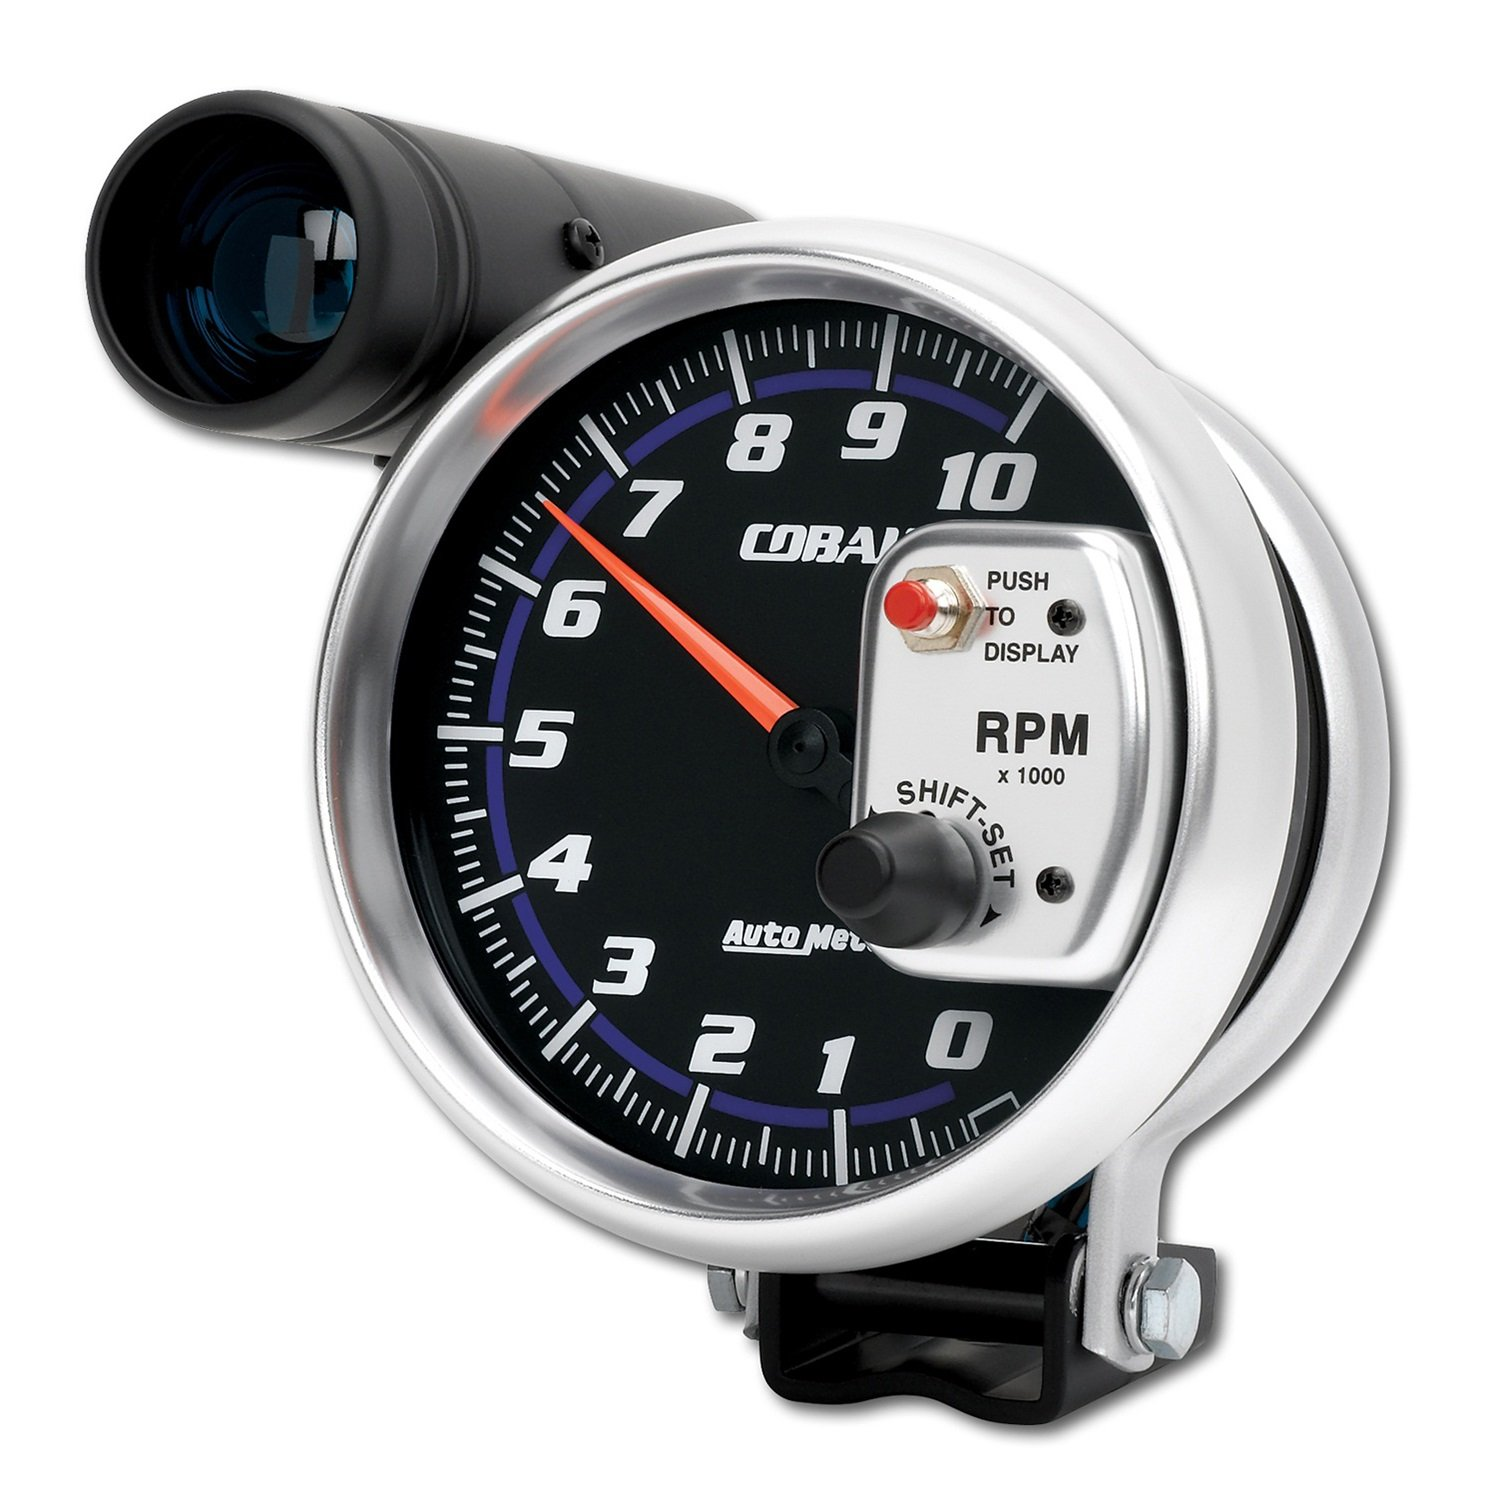 Proform Tachometer Wiring Diagram | Wiring Resources 2019 on